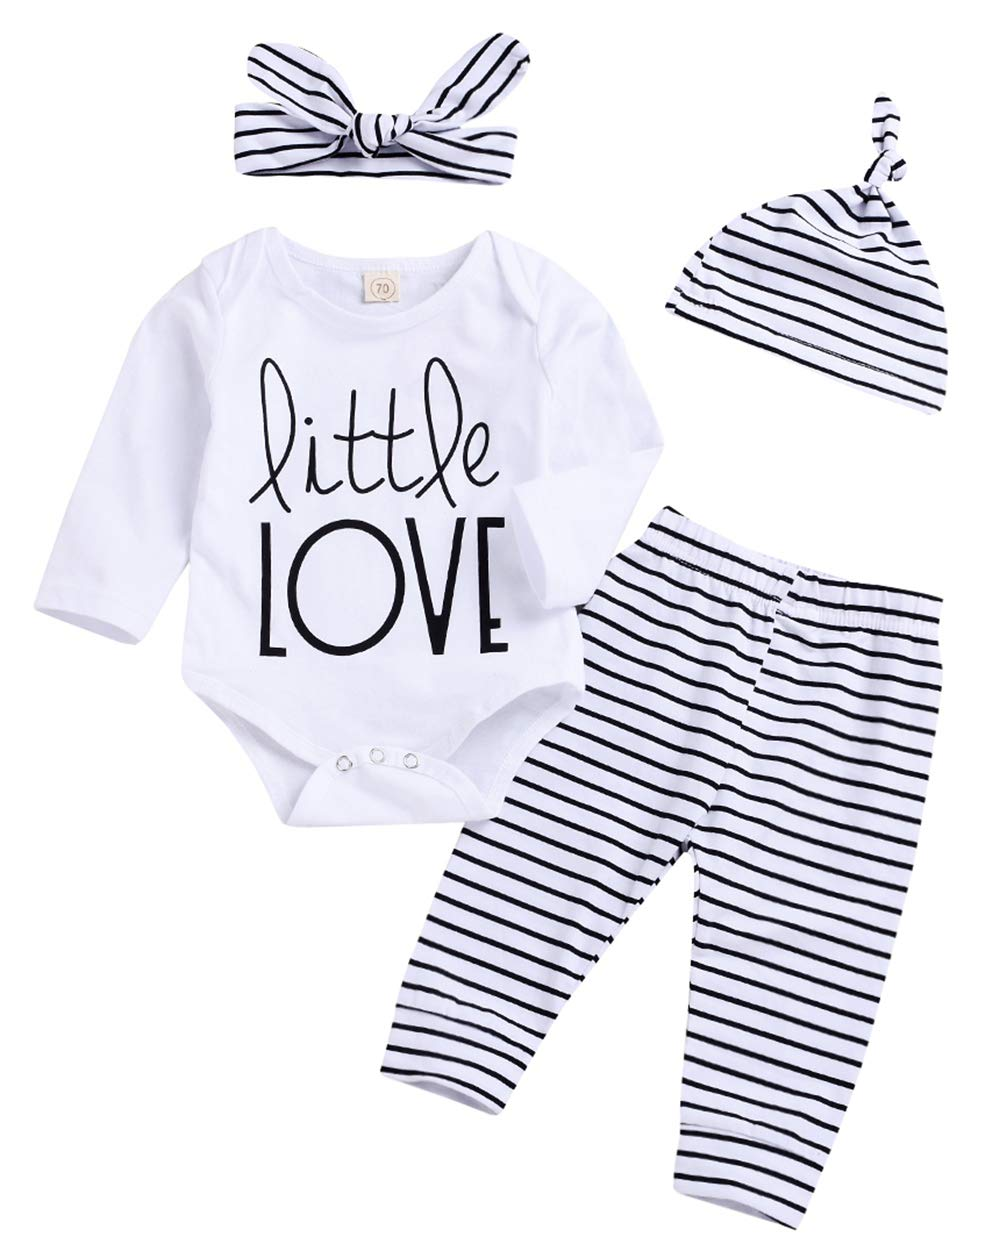 Younger Tree Newborn Infant Baby Boy Girl Love Long Sleeve Romper Bodysuit+Striped Pants+Hat+Headband Cute Outfits 4Pcs/Set (White, 0-3 Months)